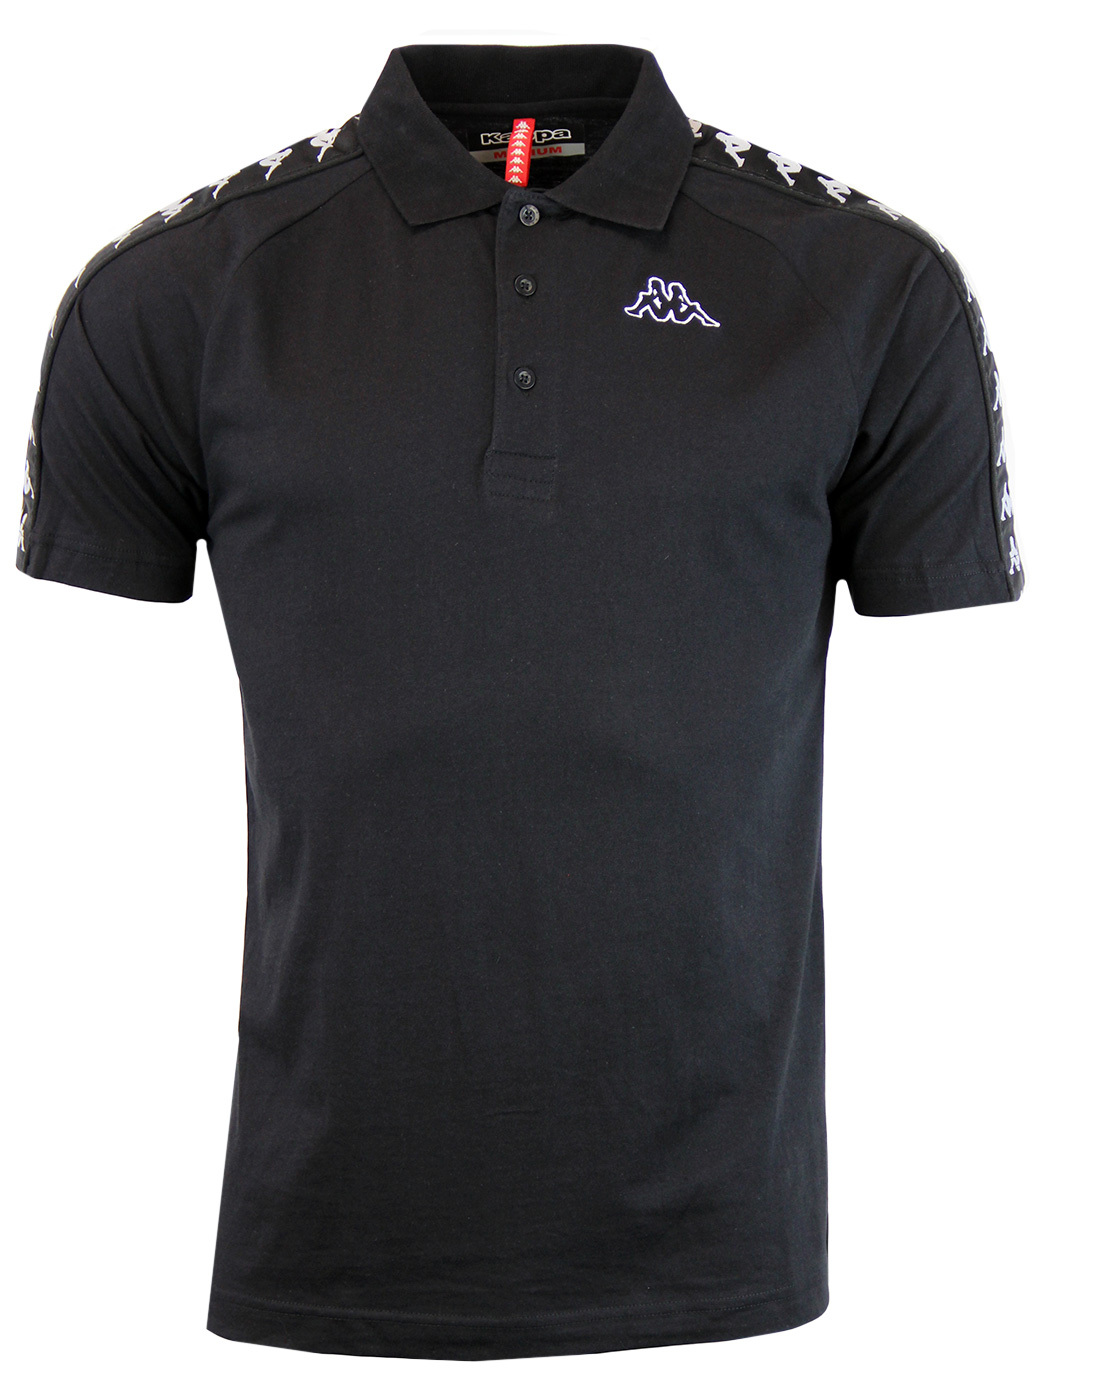 29b620b125 Estrel ROBE DI KAPPA mens 80s Retro Taped Sleeve Polo in Black